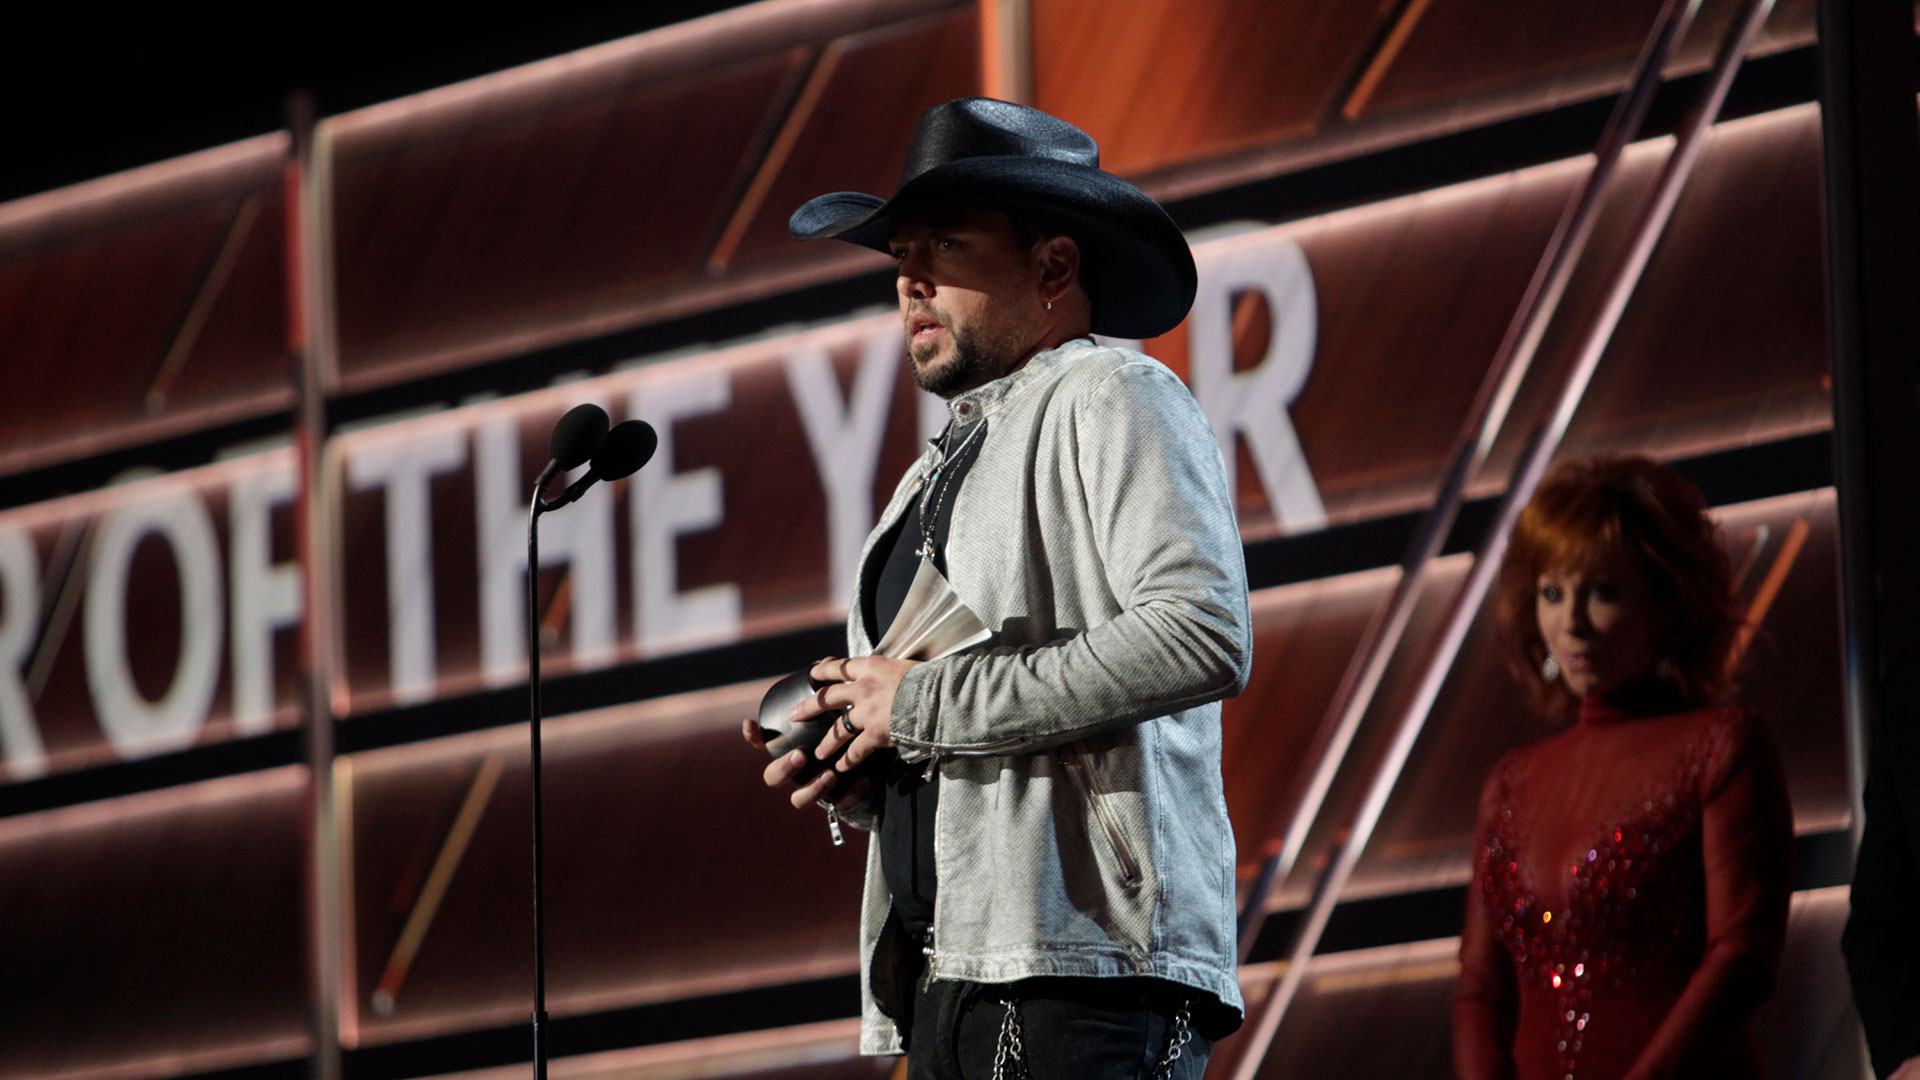 Jason Aldean wins Entertainer of the Year at the 53rd ACM Awards.